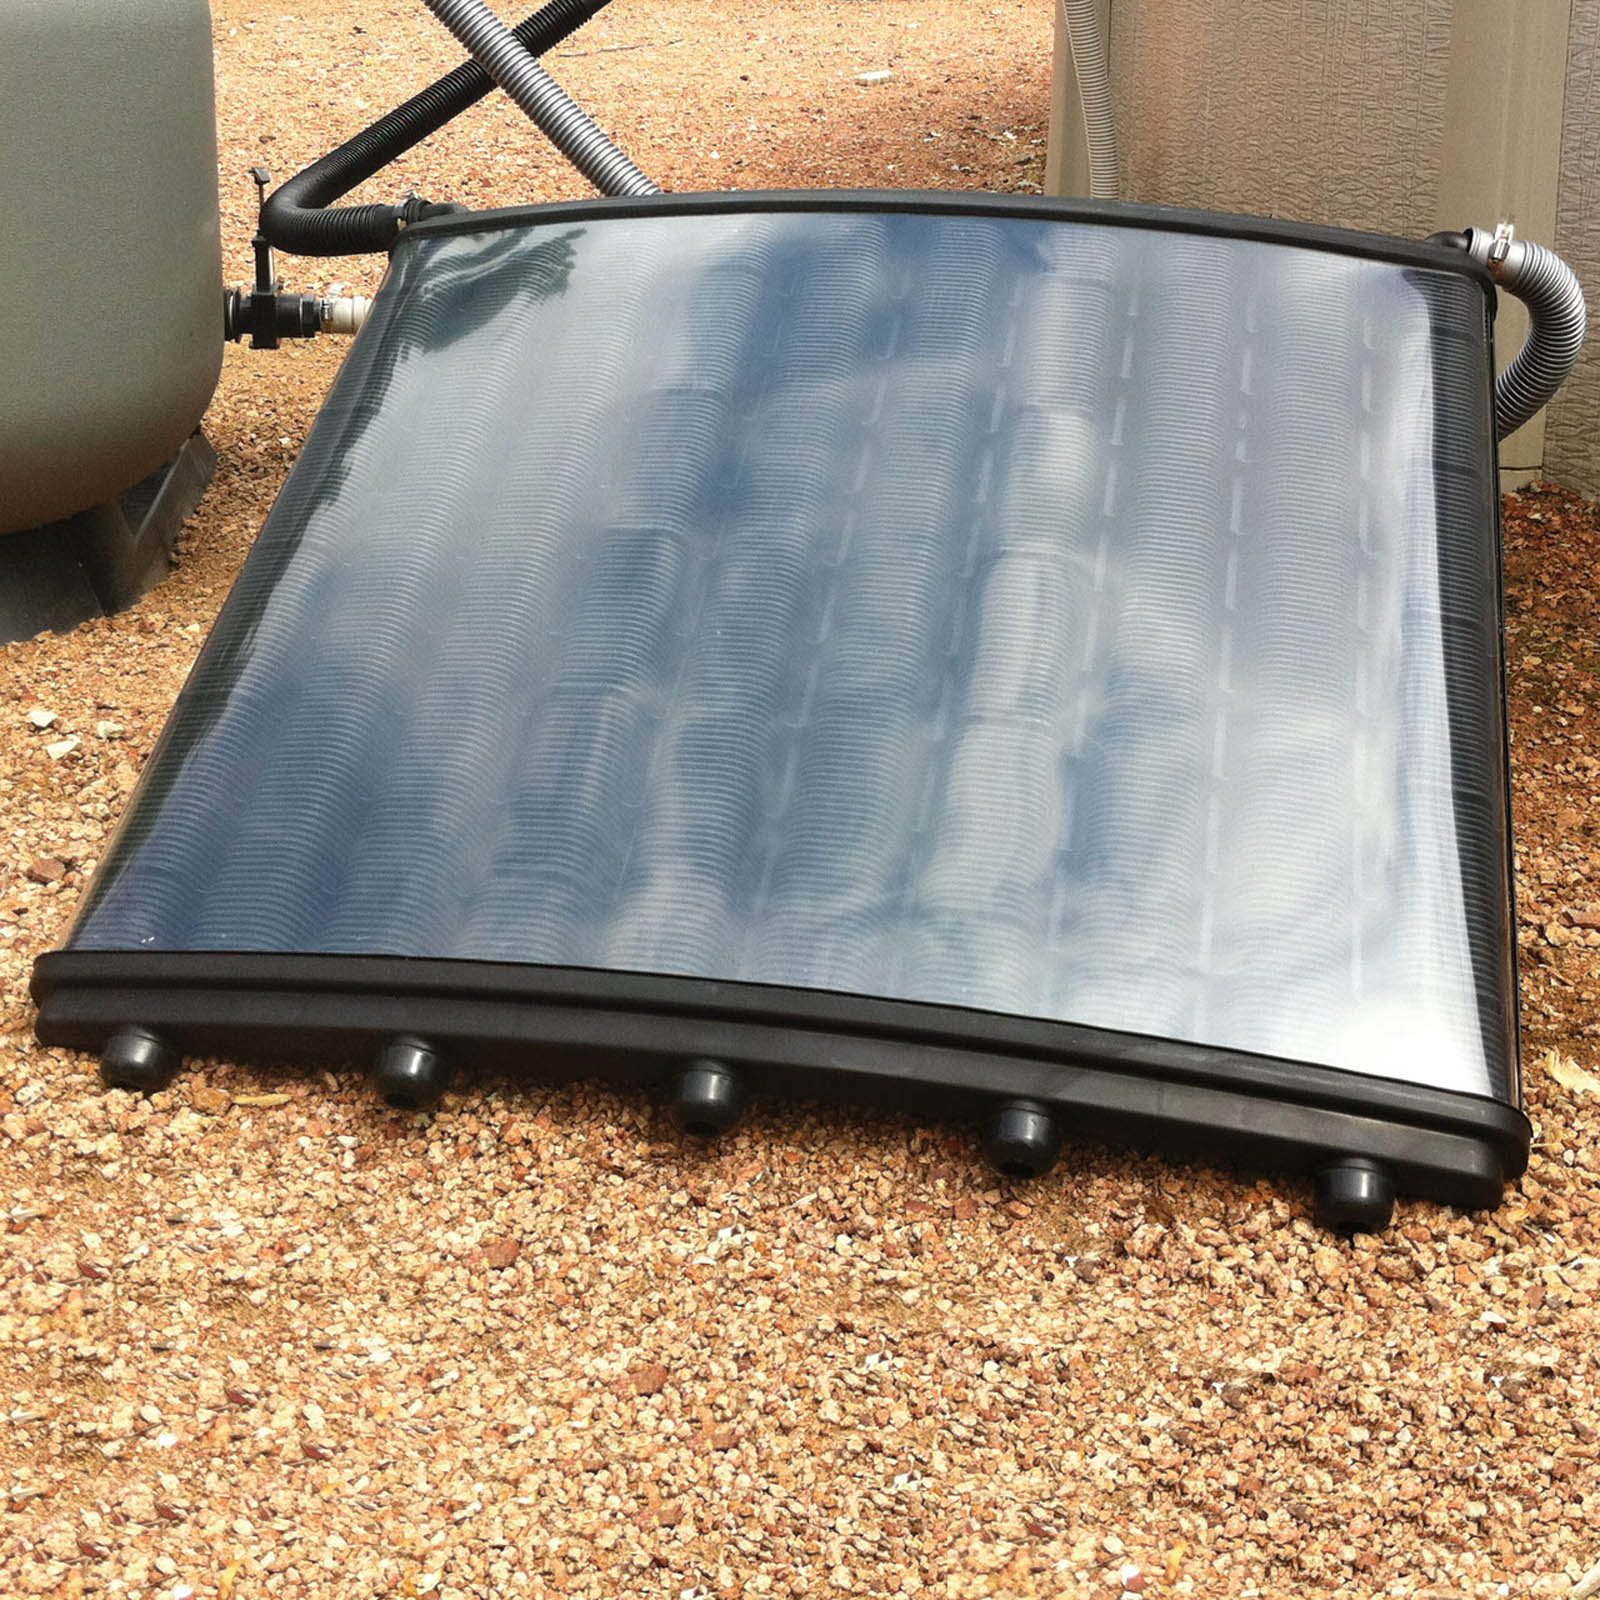 SolarPro Grid Pool Heating Solar Panels